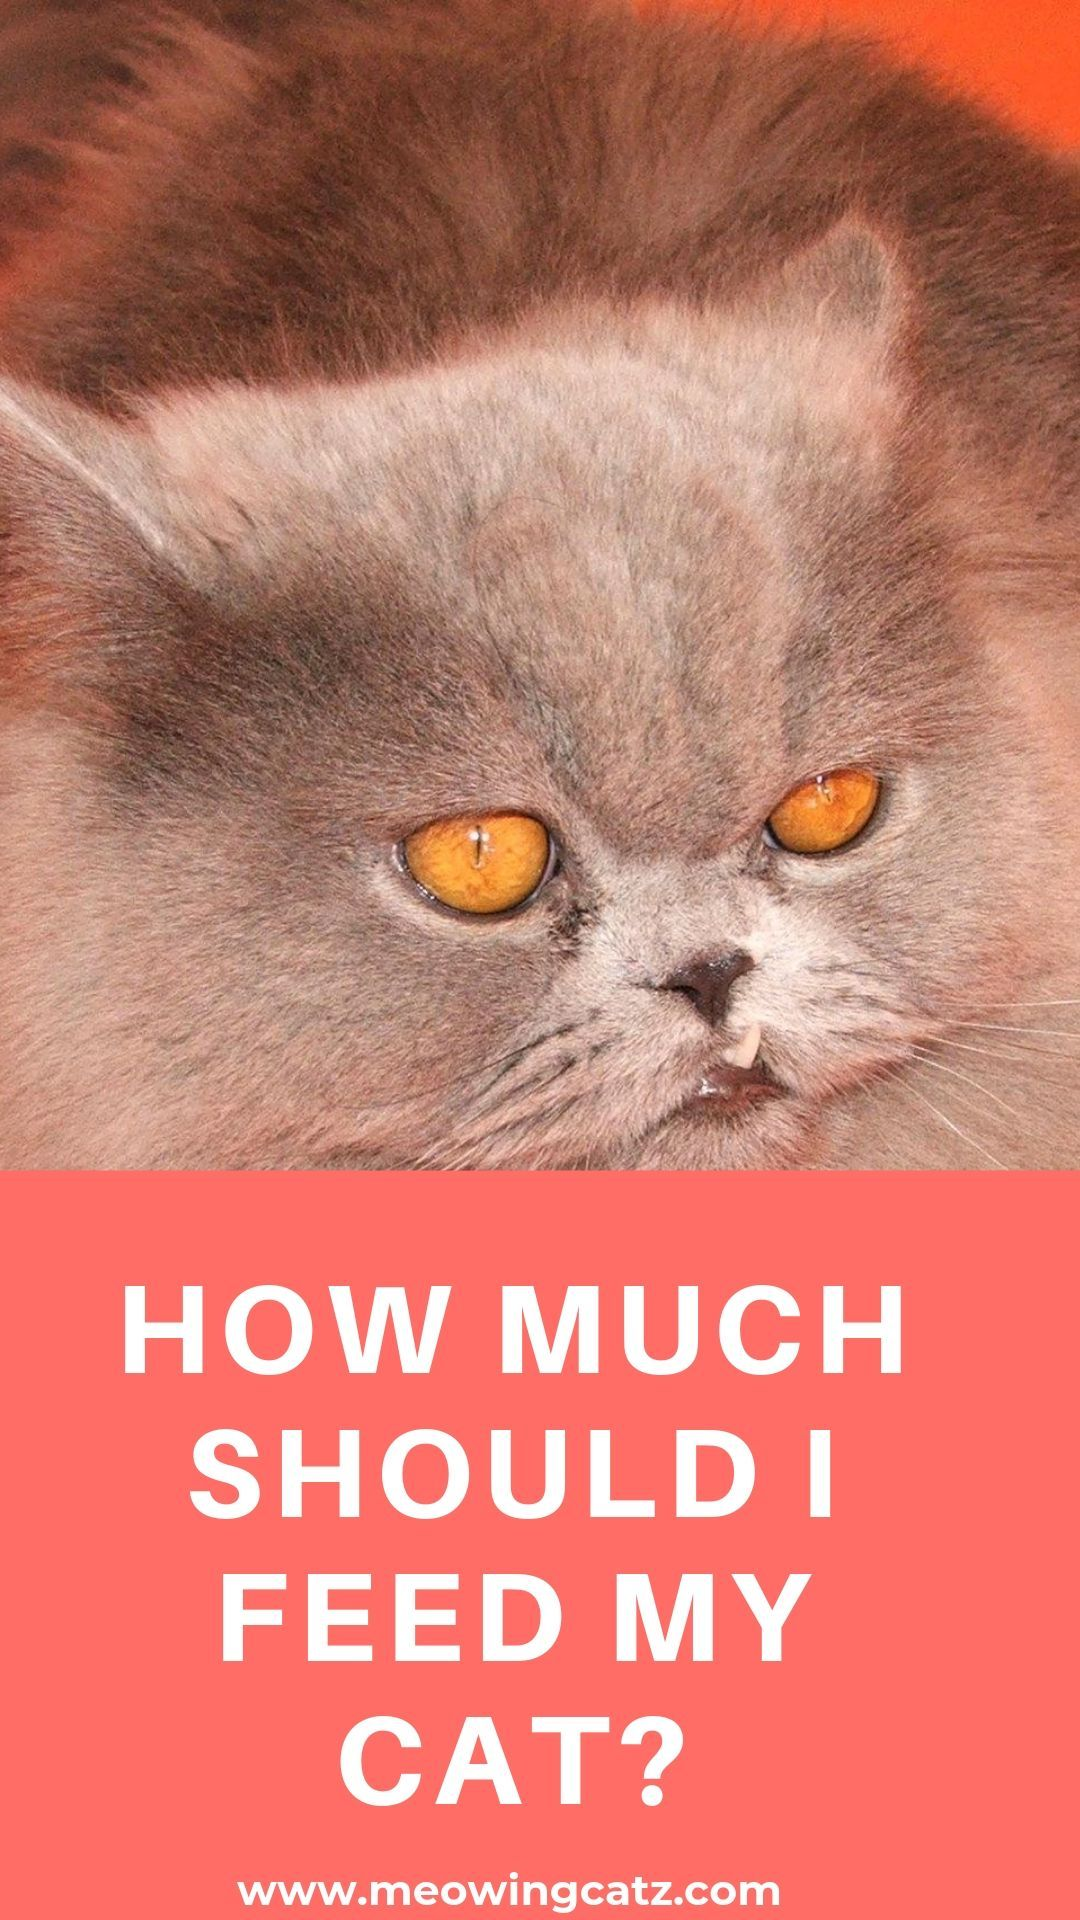 How Much Should I Feed My Cat Cat Parenting Pet Hacks Cats